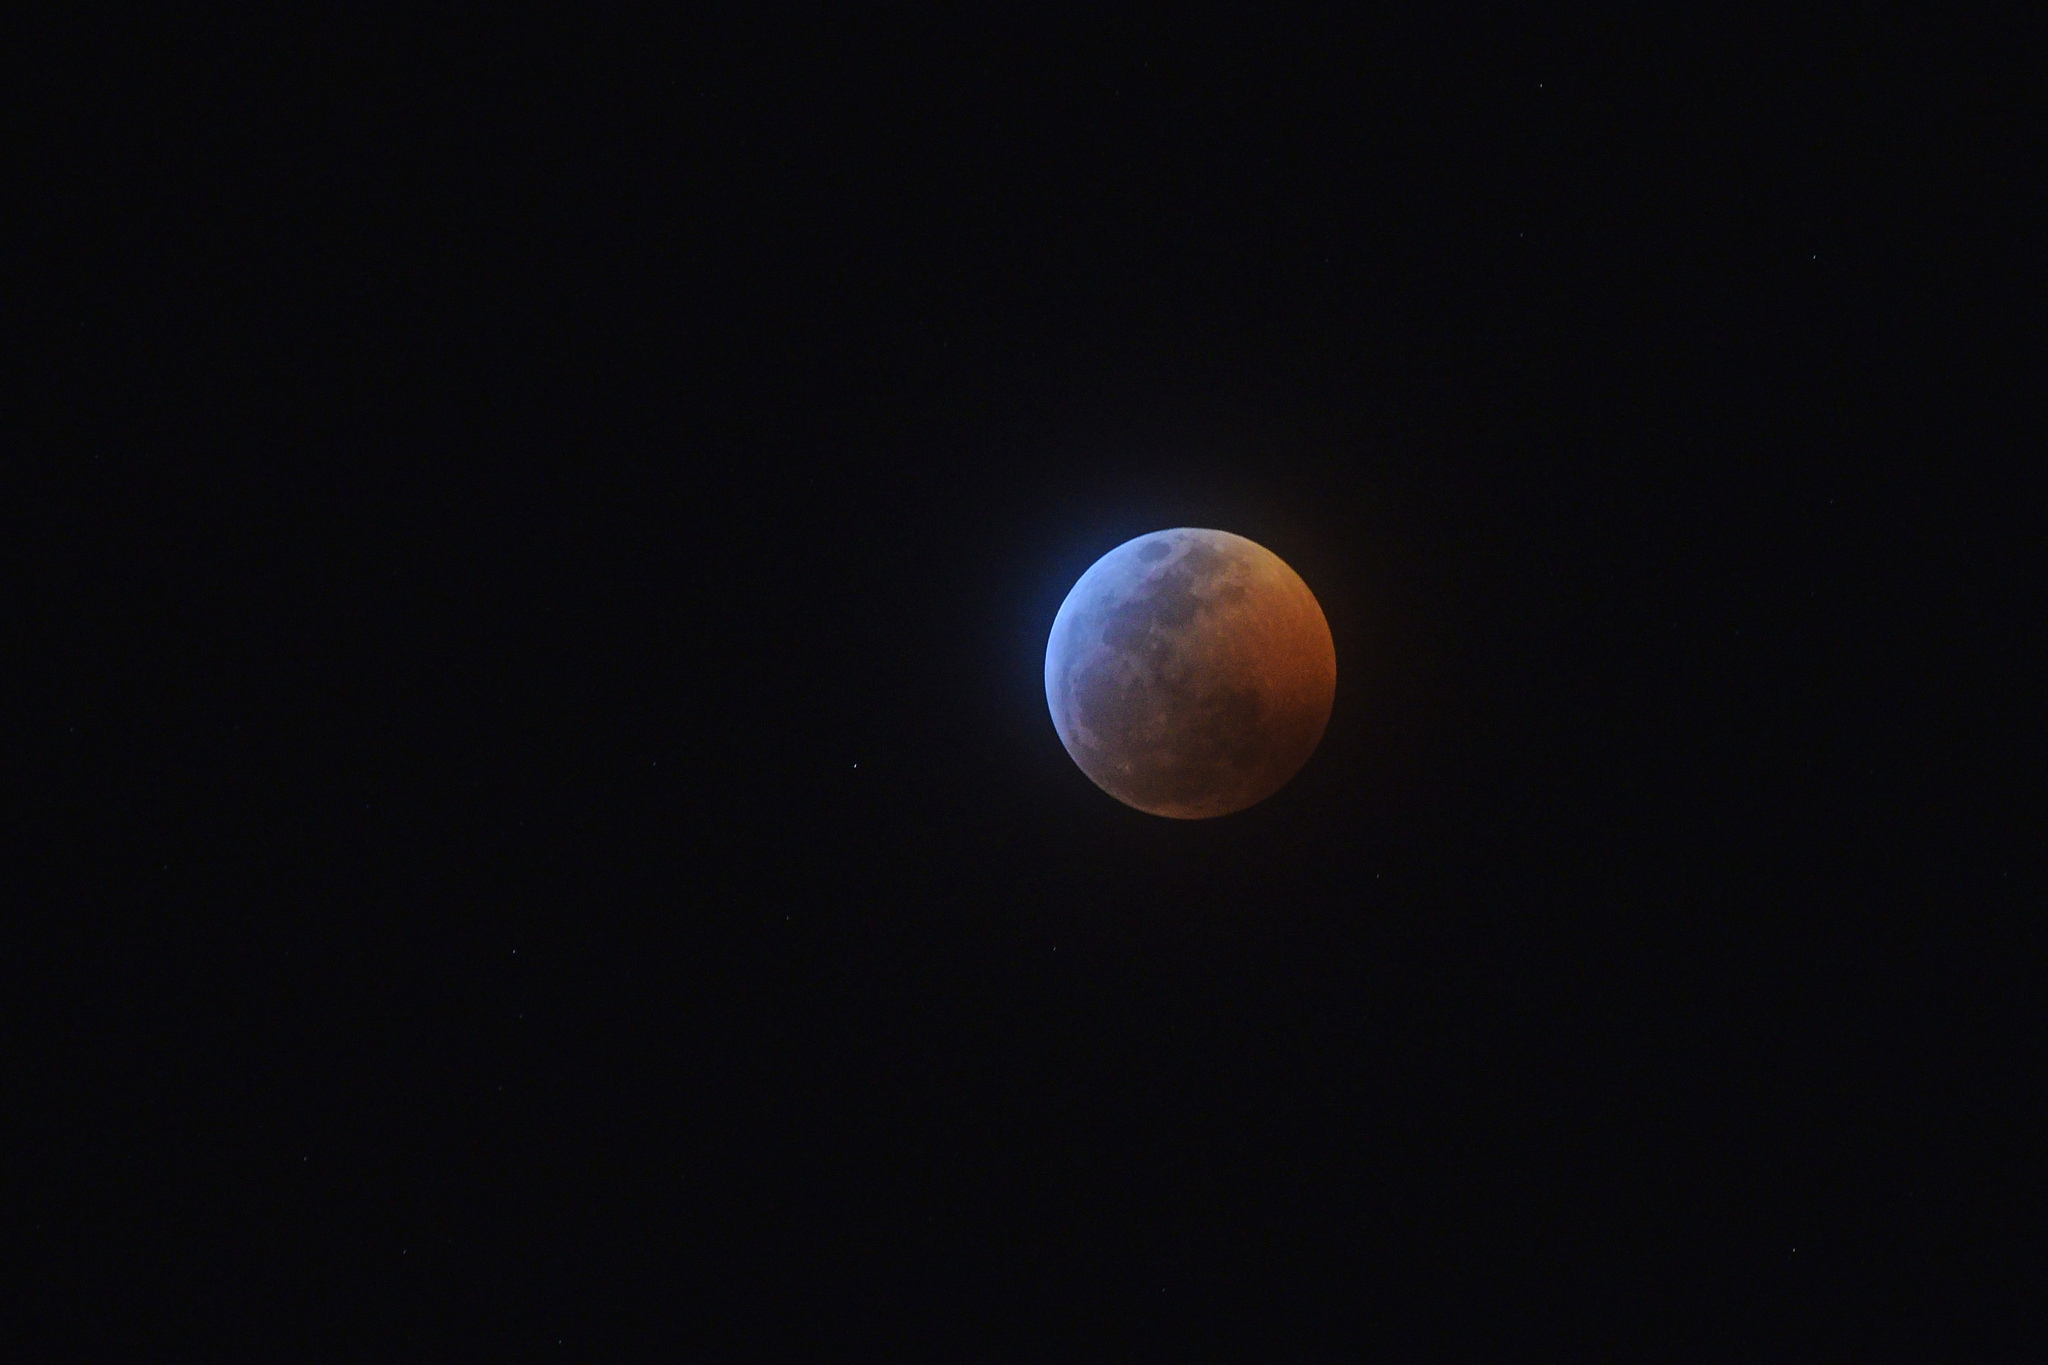 Caption: 2019 Lunar Eclipse, Credit: Chance Kafka via Flickr